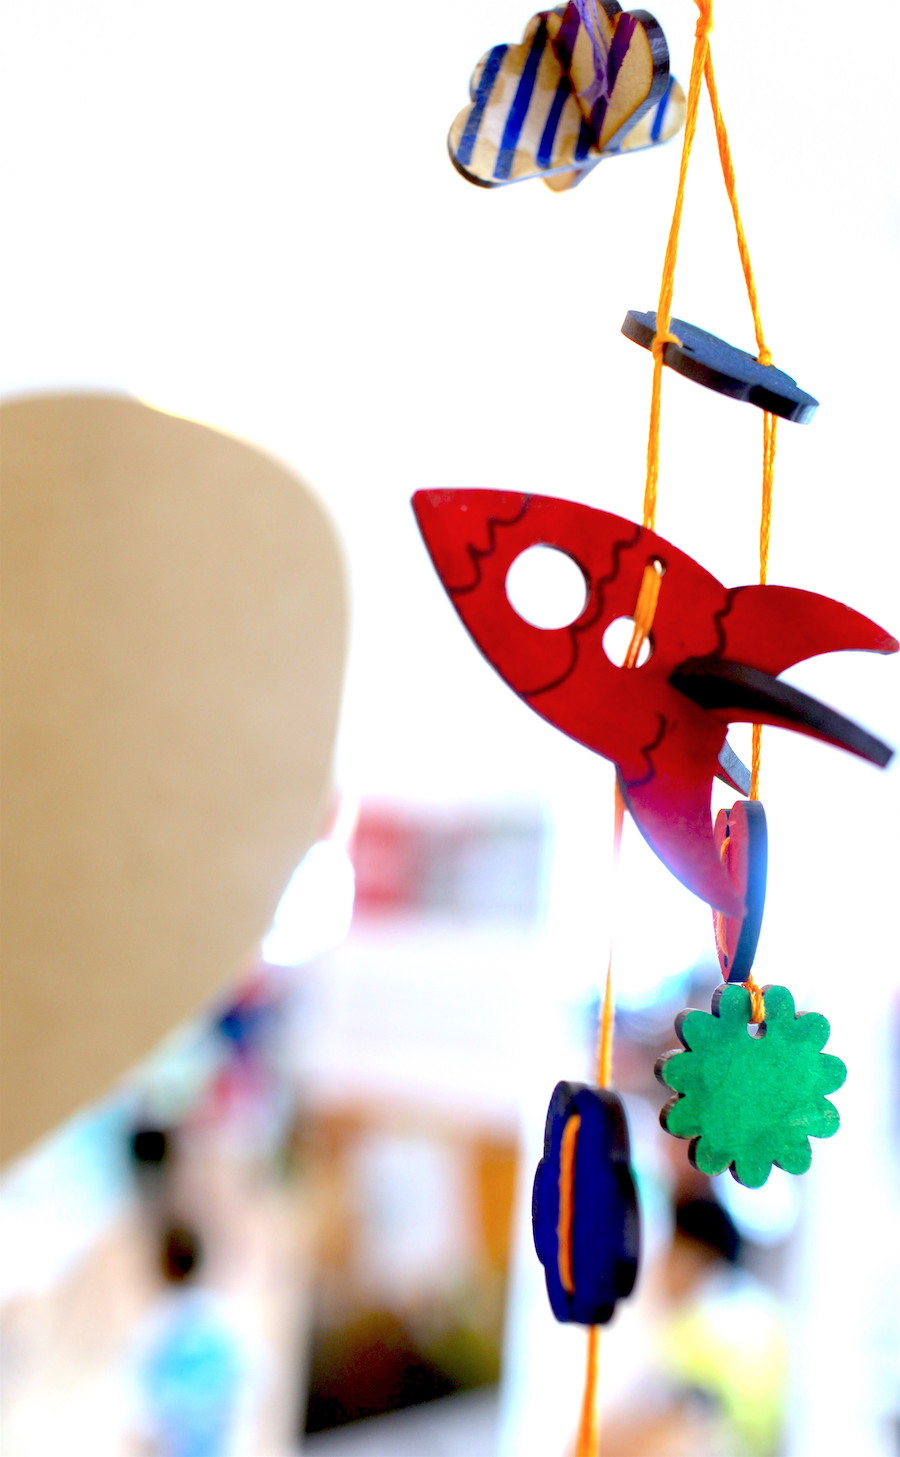 FabKids! Make Your Own: Rocket Universe (13 Nov)